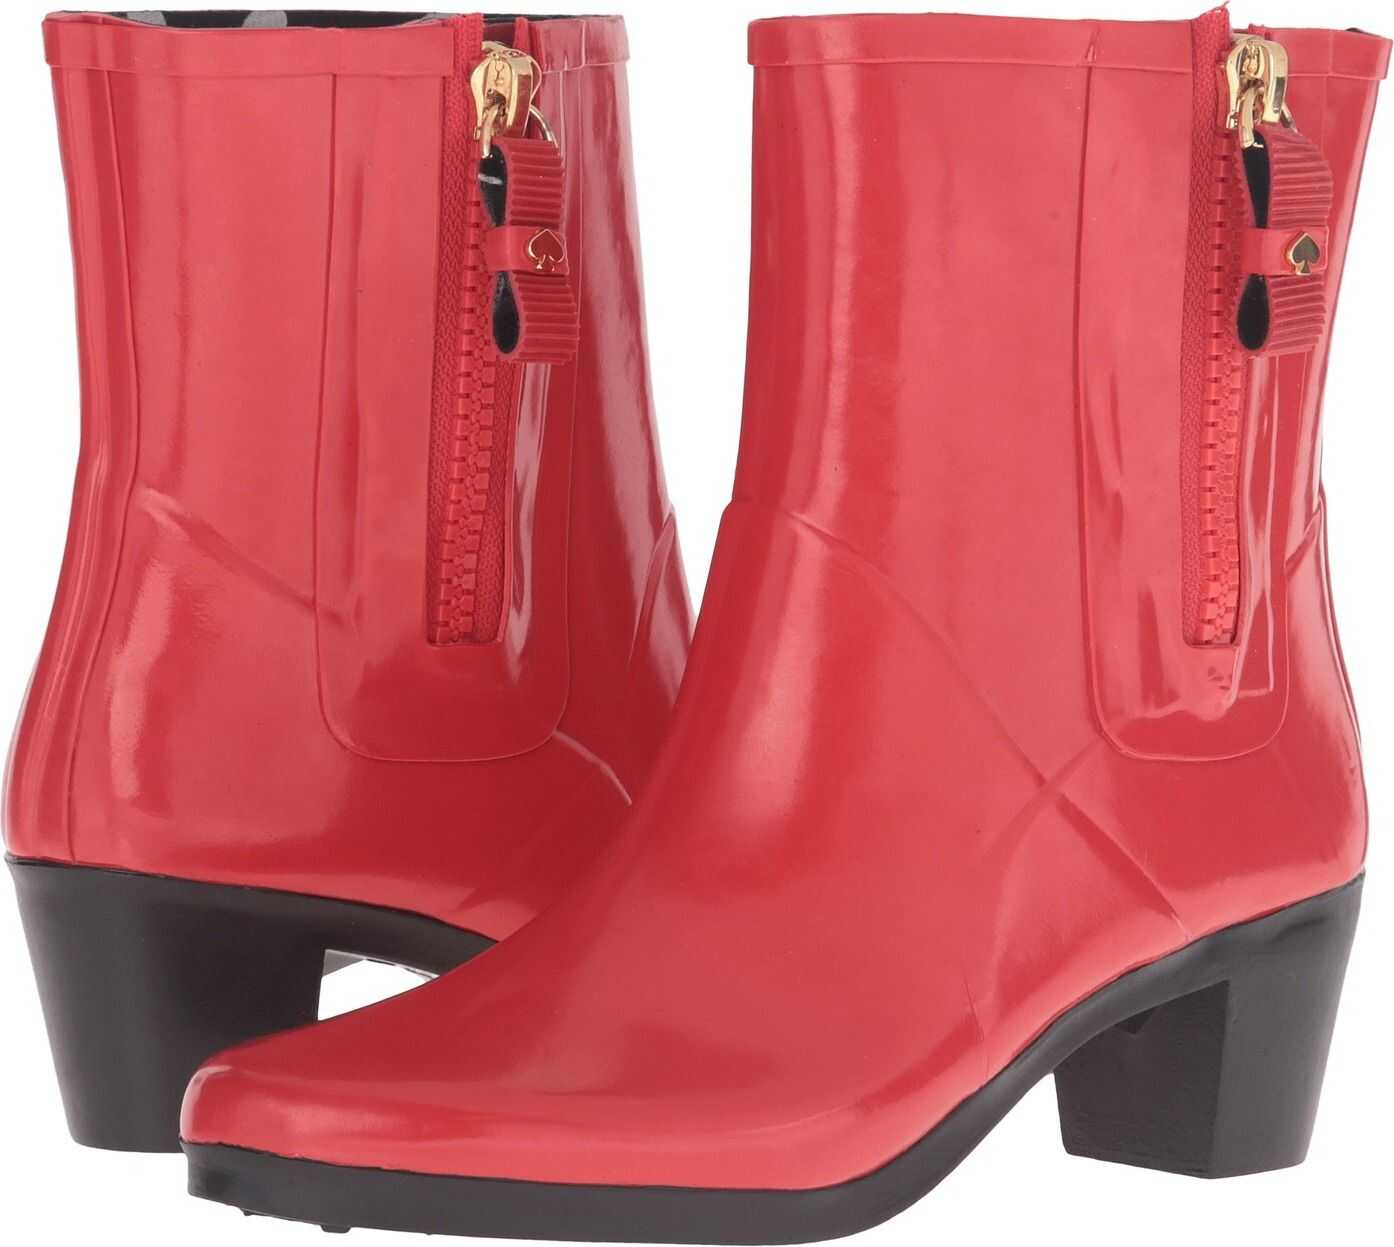 Kate Spade New York Penny Red Shiny Rubber